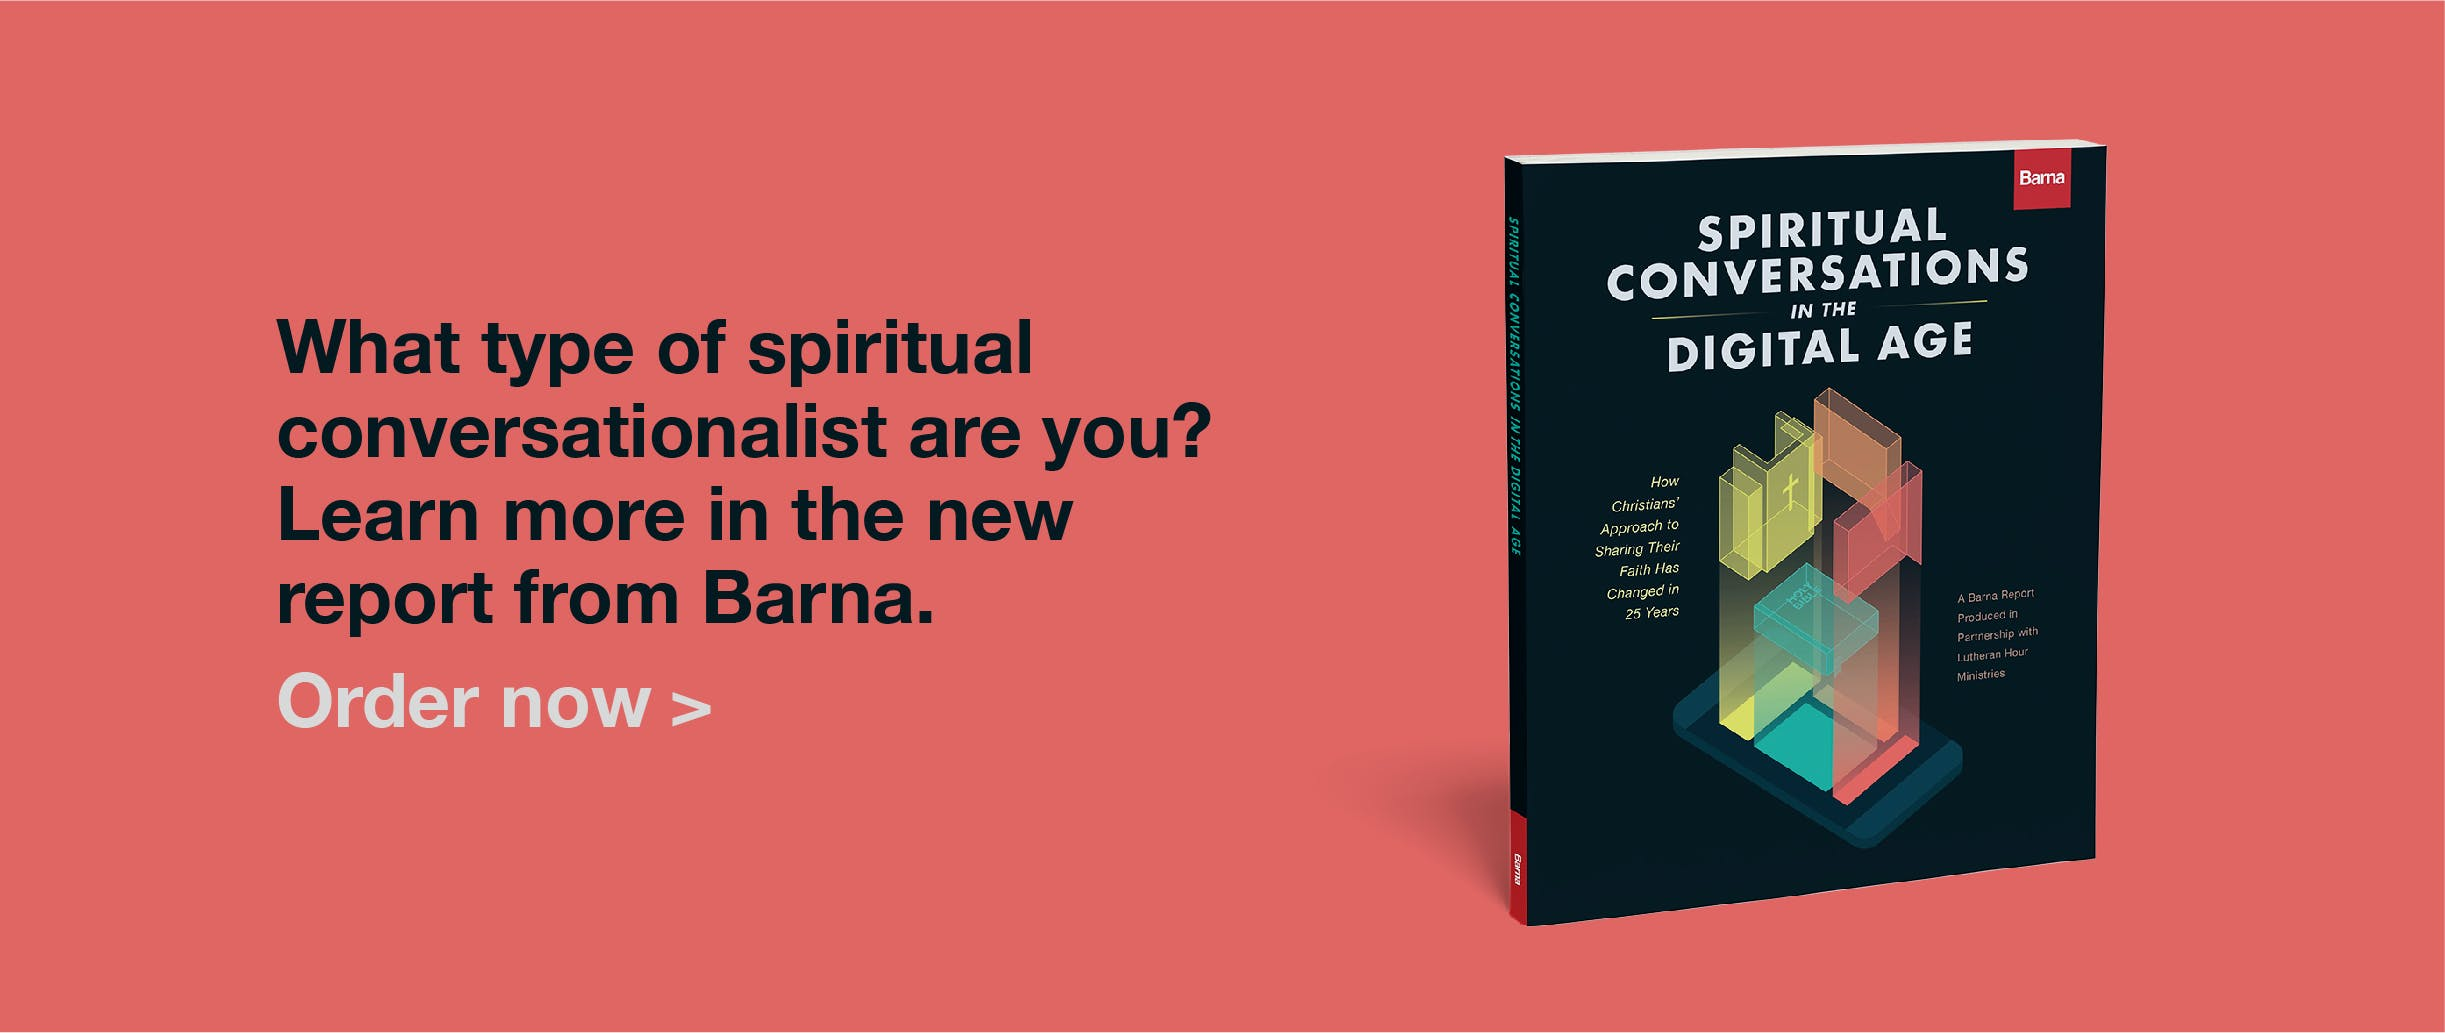 spiritual conversations in the digital age book